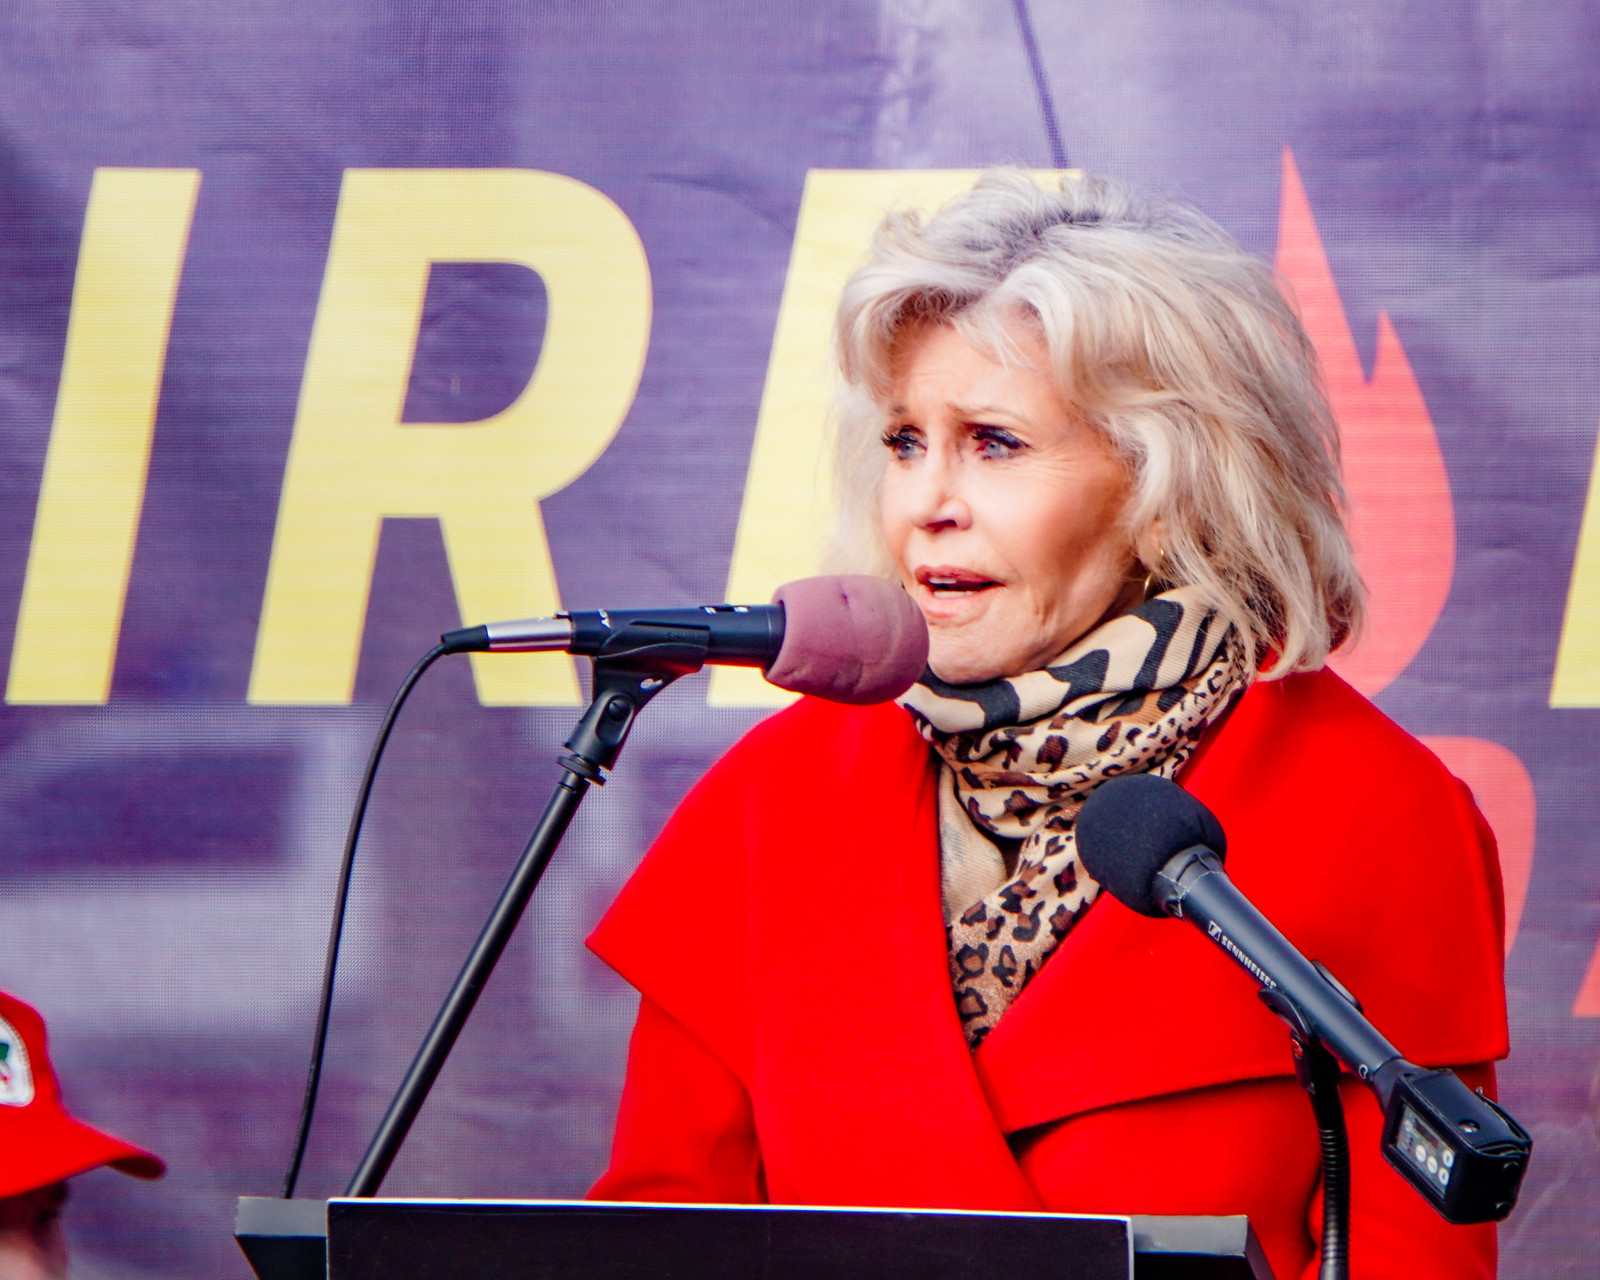 2019.11.29 Fire Drill Fridays with Jane Fonda, Washington, DC USA  333 115040